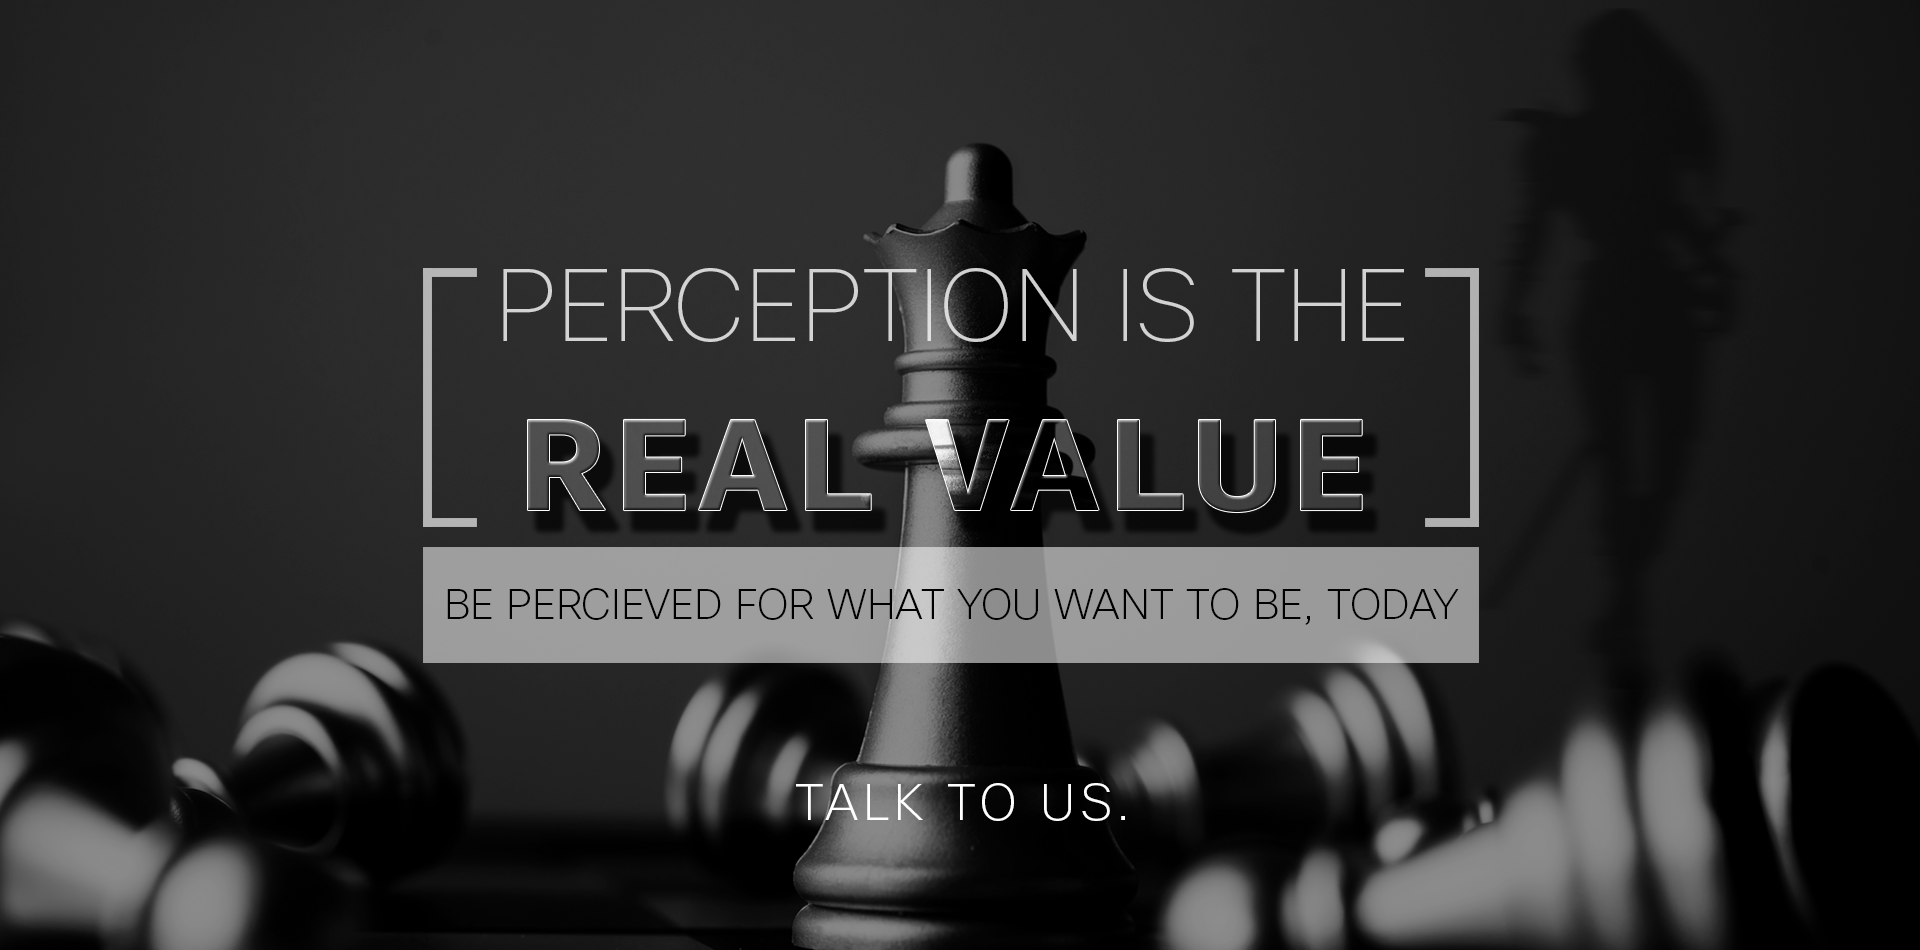 Perceptions is the real value.